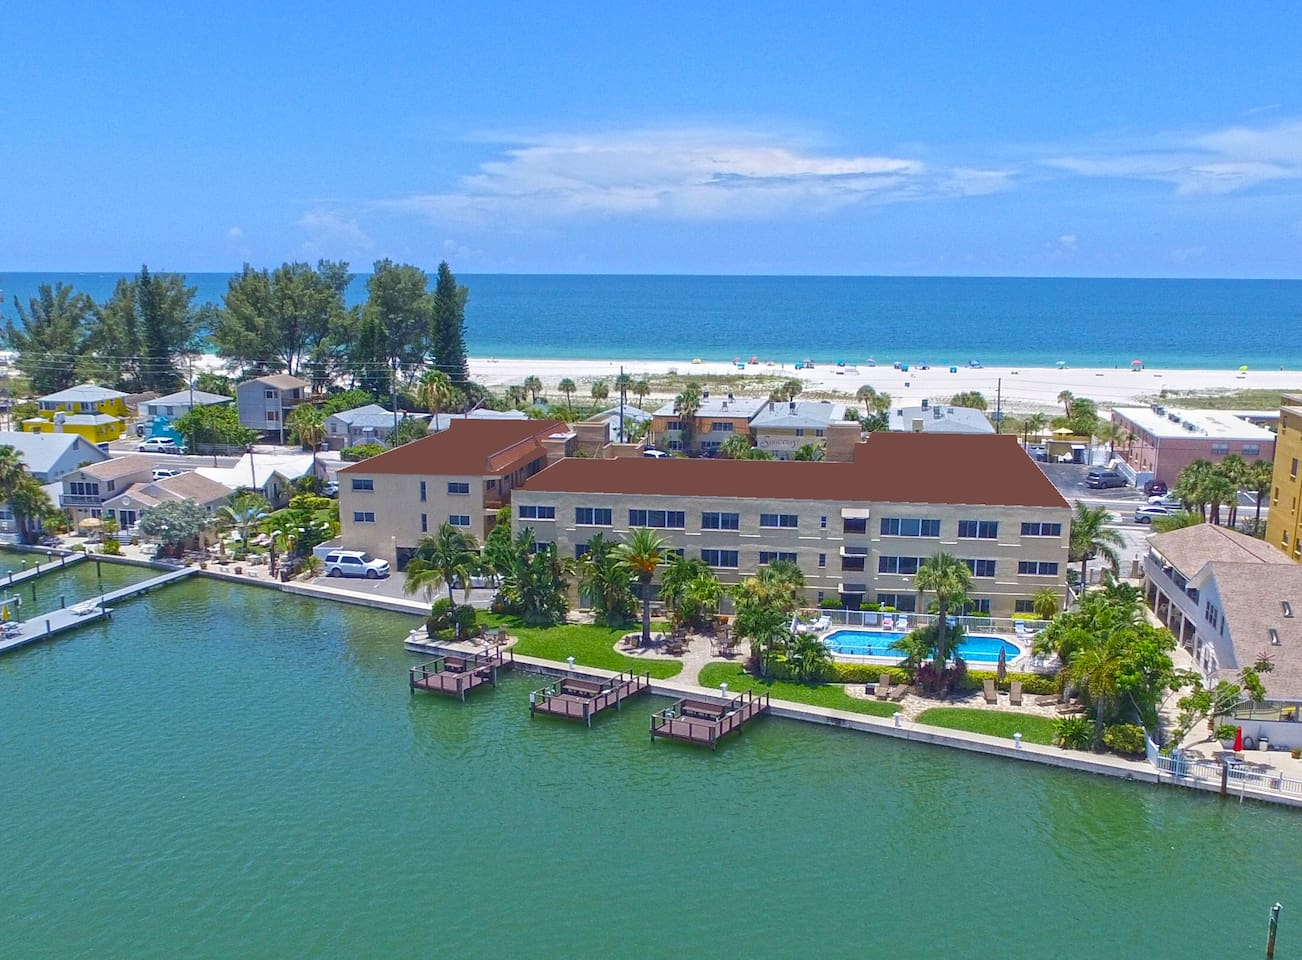 Aerial view of Westwinds Waterfront Resort